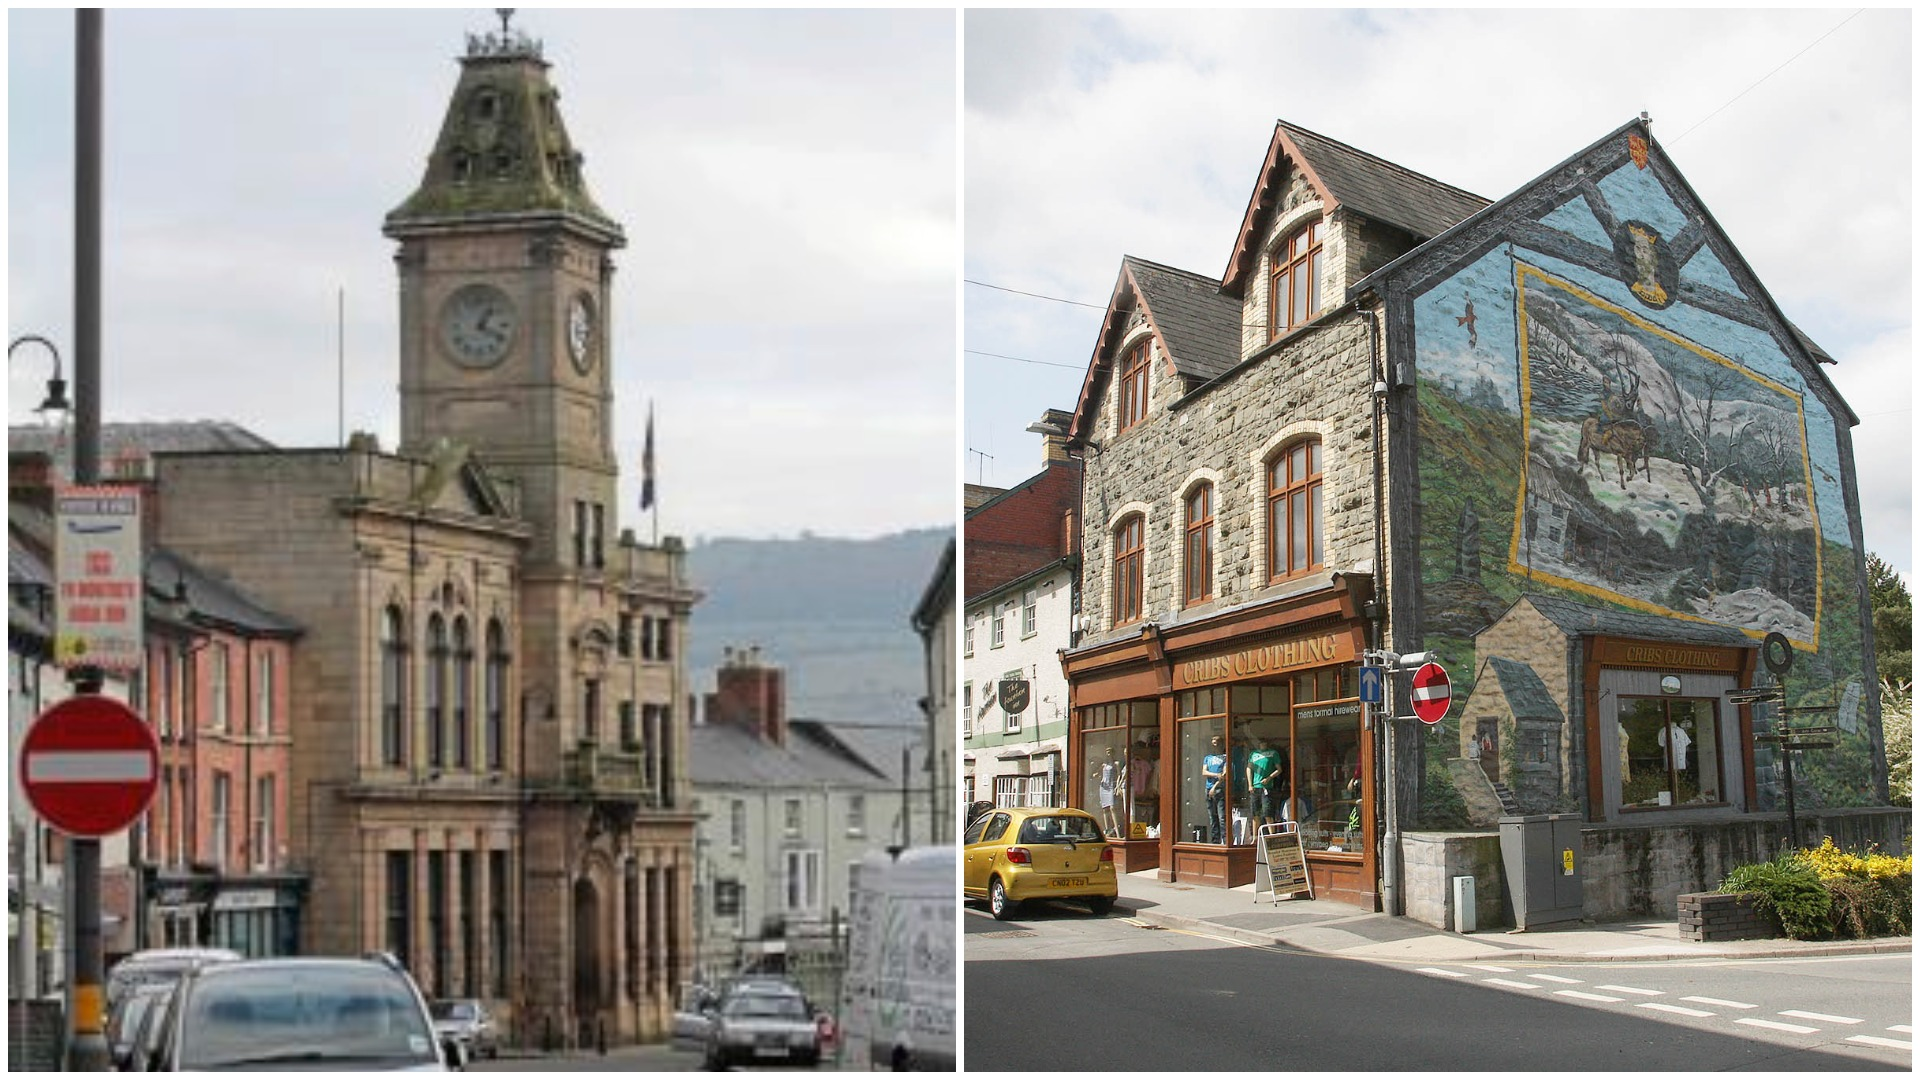 Welshpool and Builth Wells are in the top 10 places to live according to the Royal Mail.